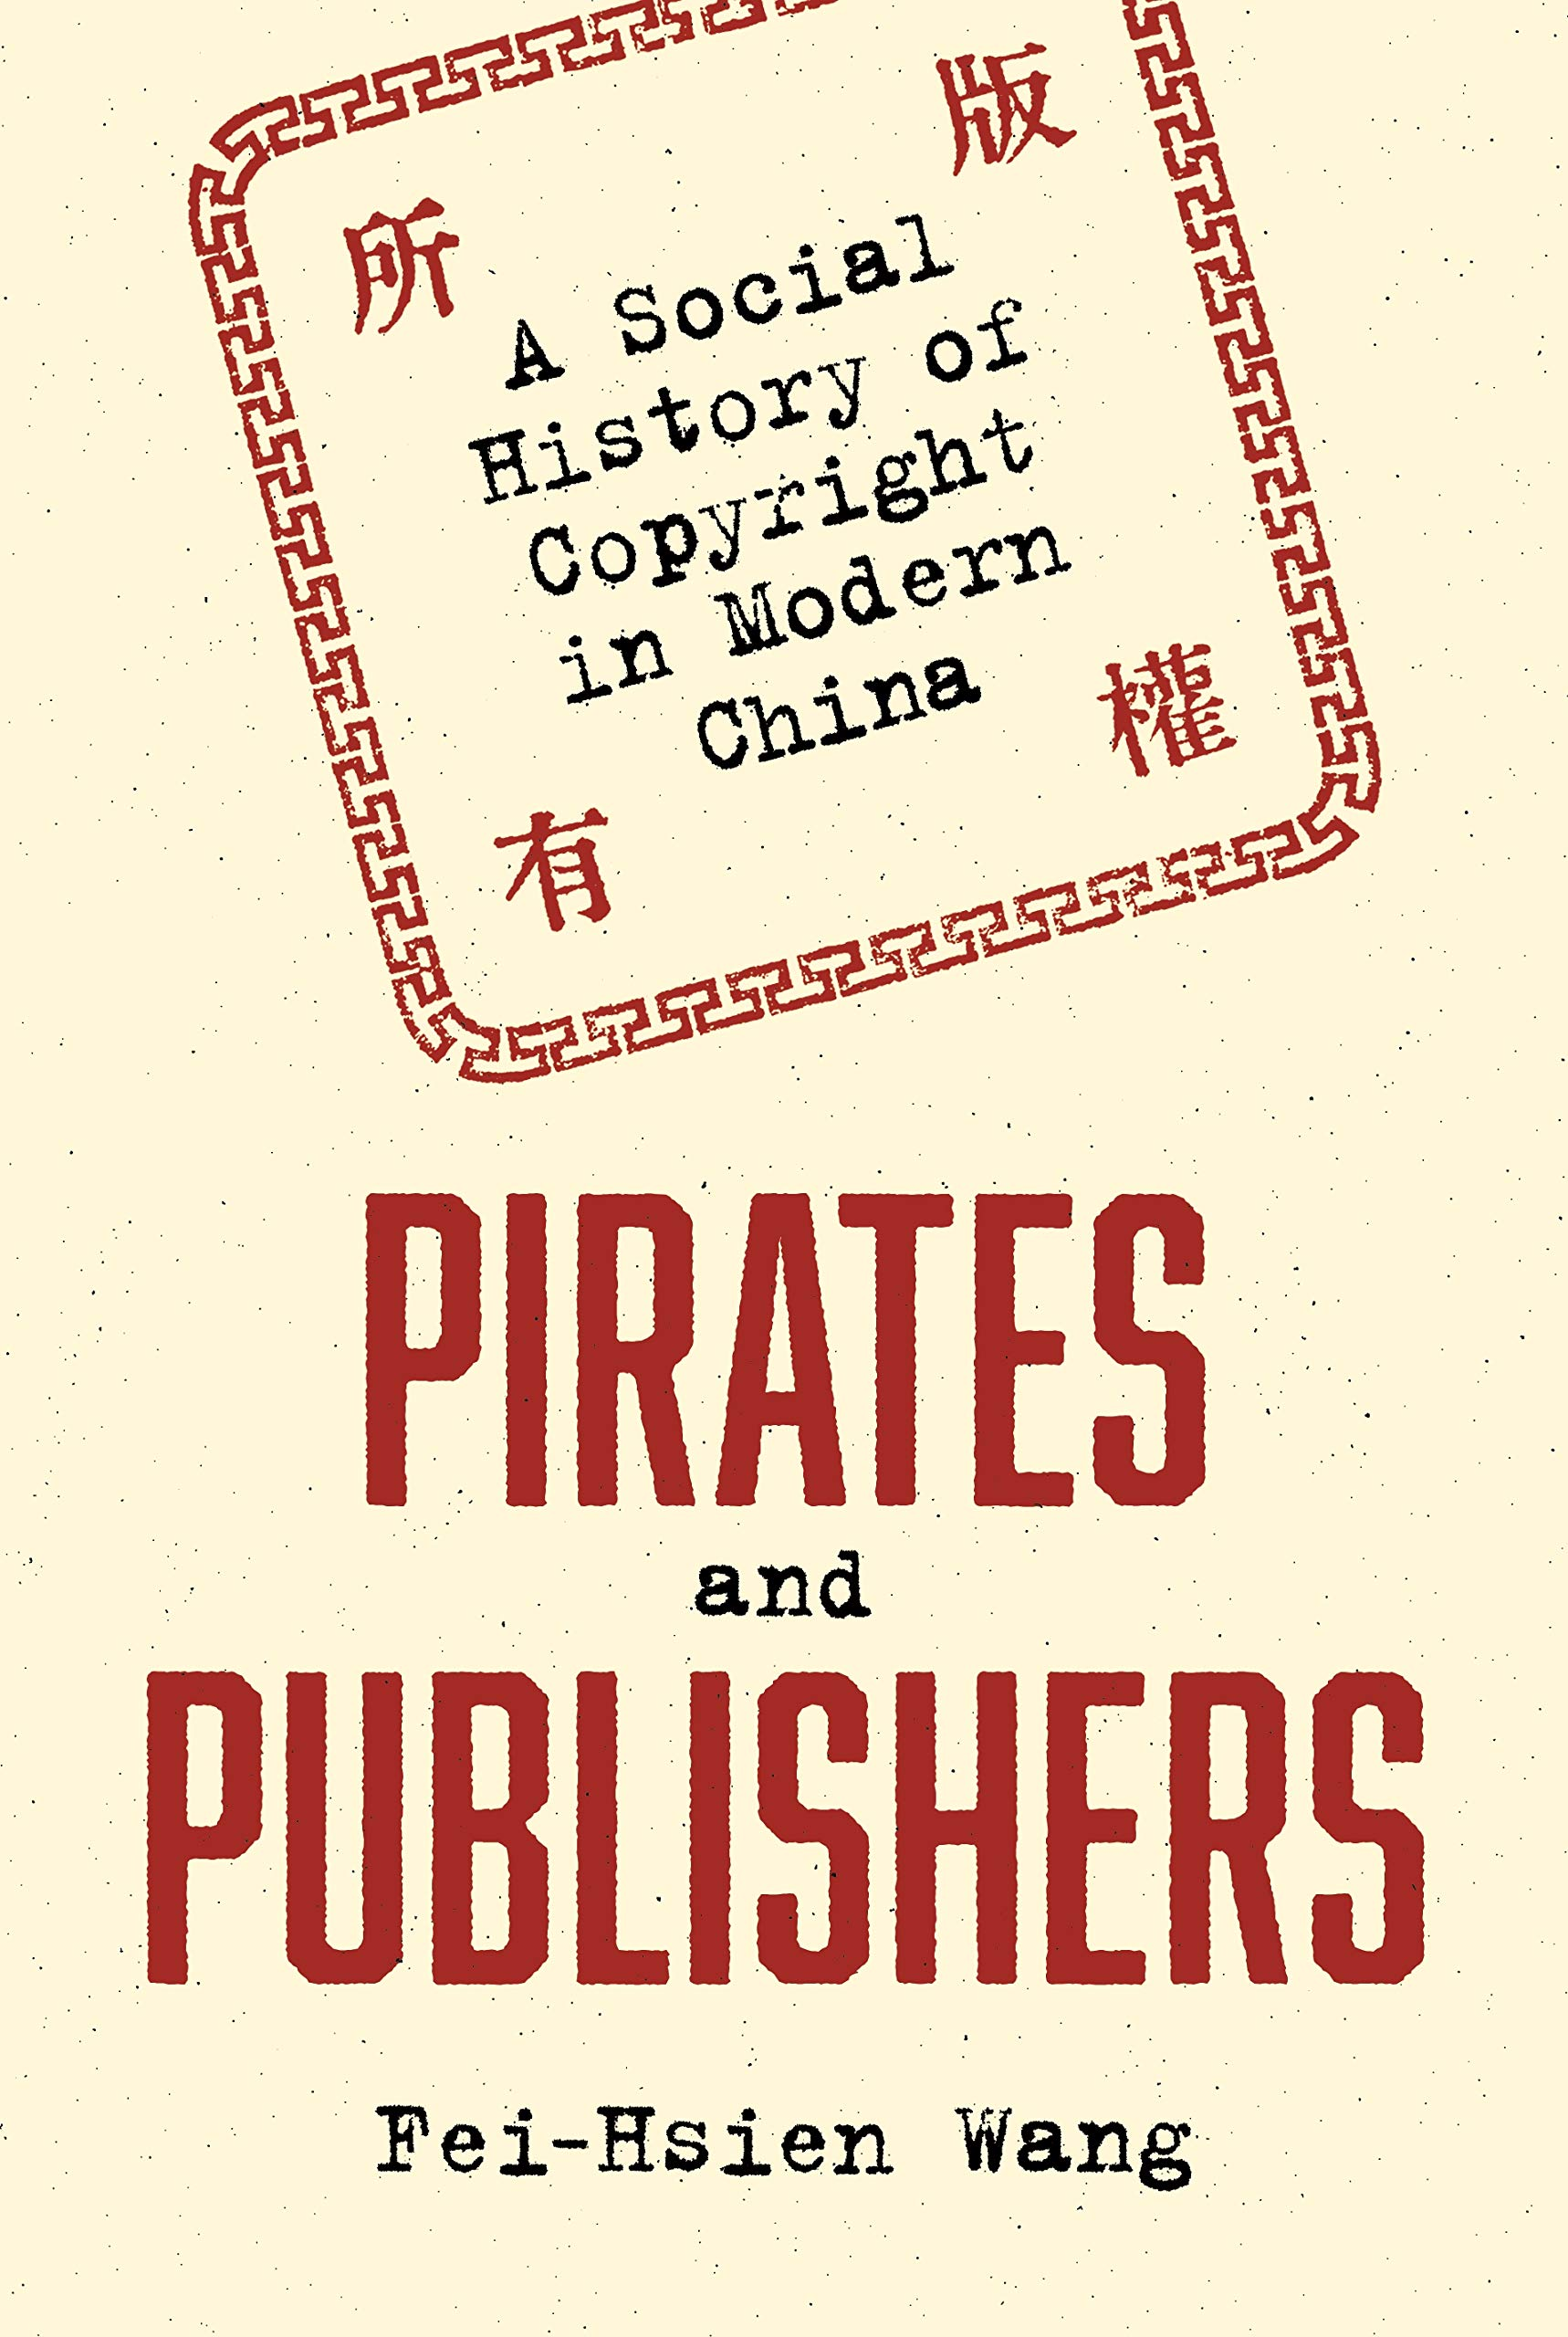 Pirates and Publishers: A Social History of Copyright in Modern China (Studies of the Weatherhead East Asian Institute) by Princeton University Press